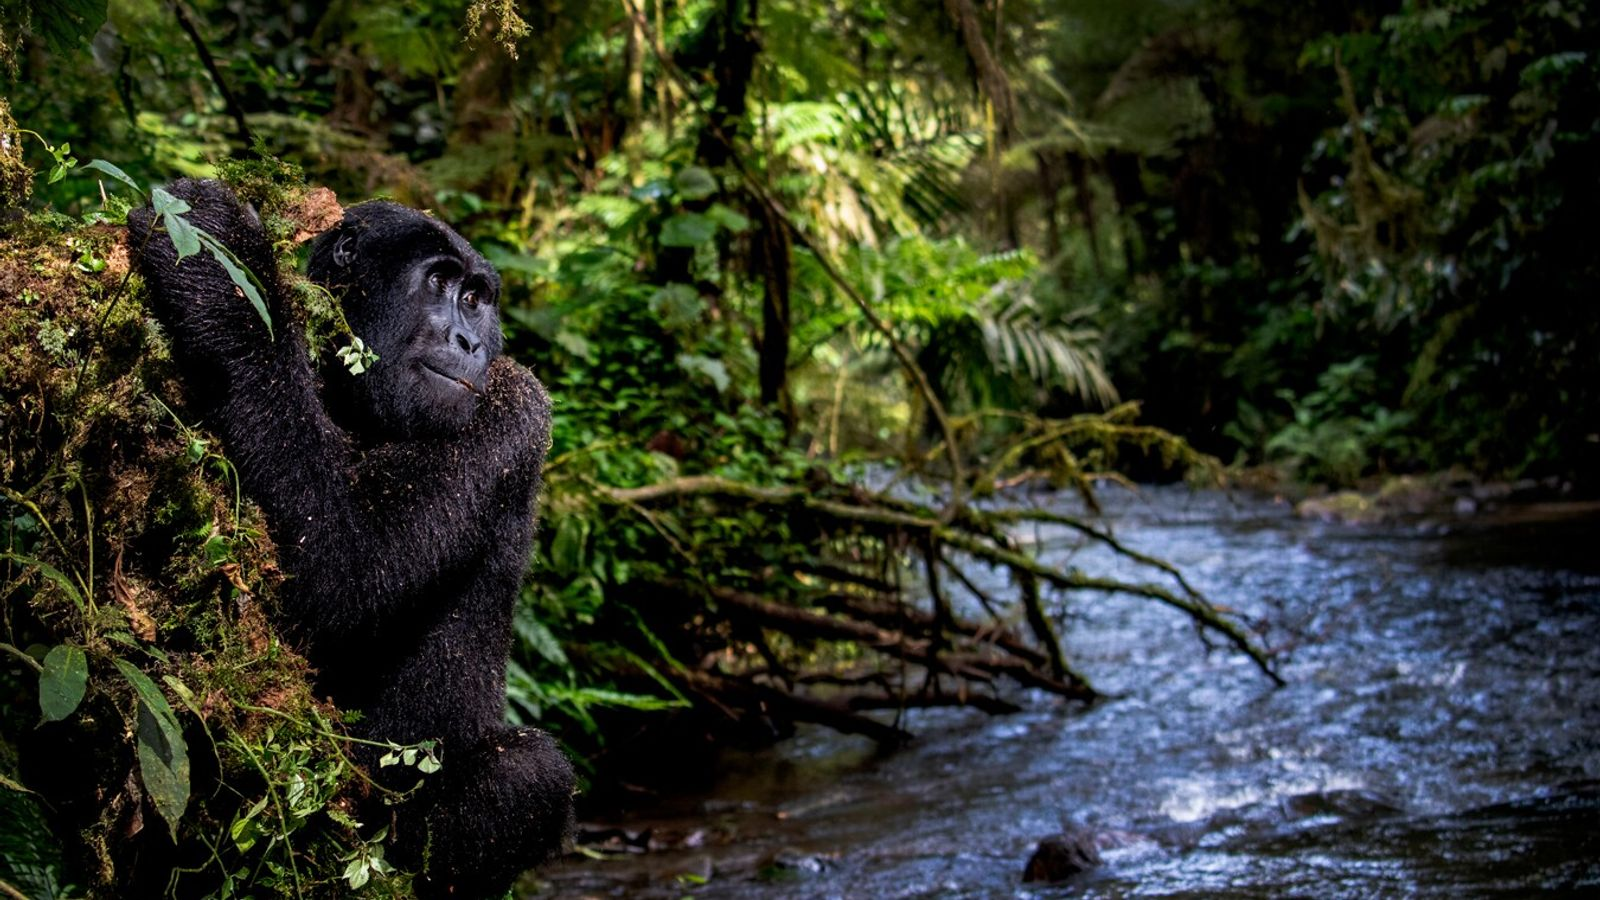 Gorilla by the water